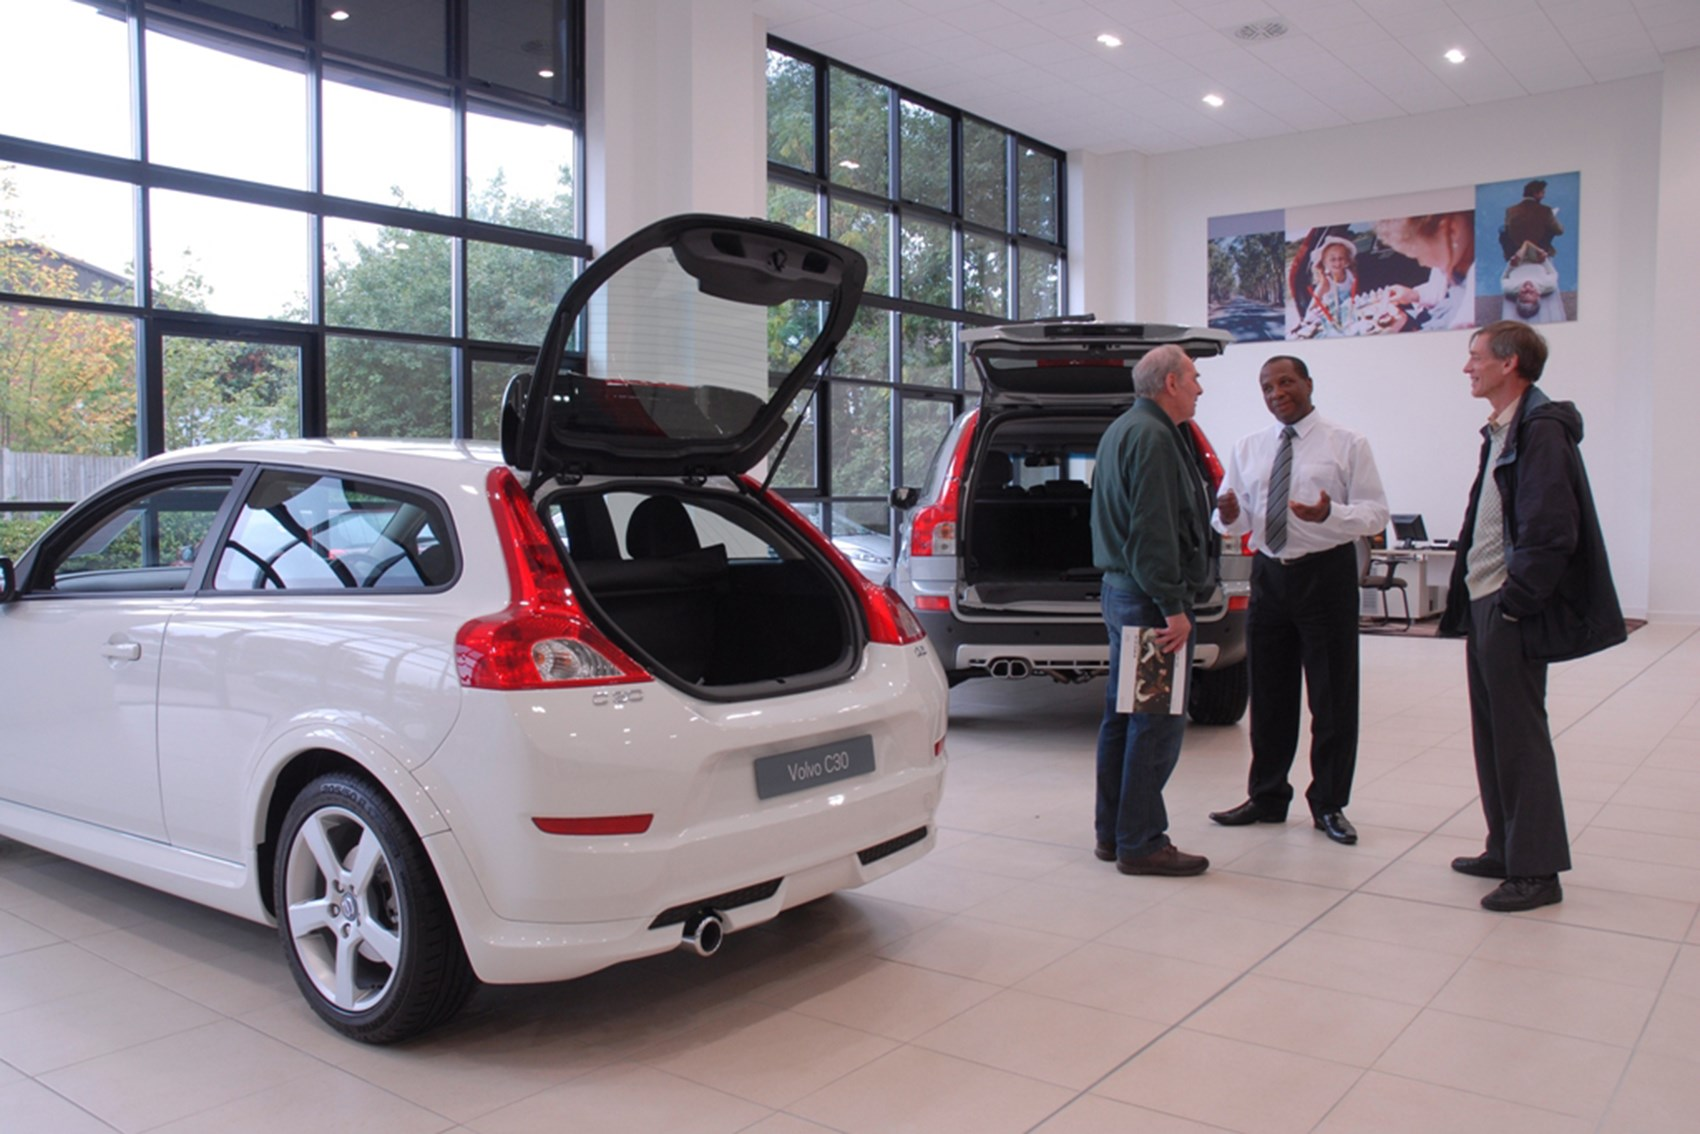 volvo plans htm website secor warranty ct dealership in new extended london